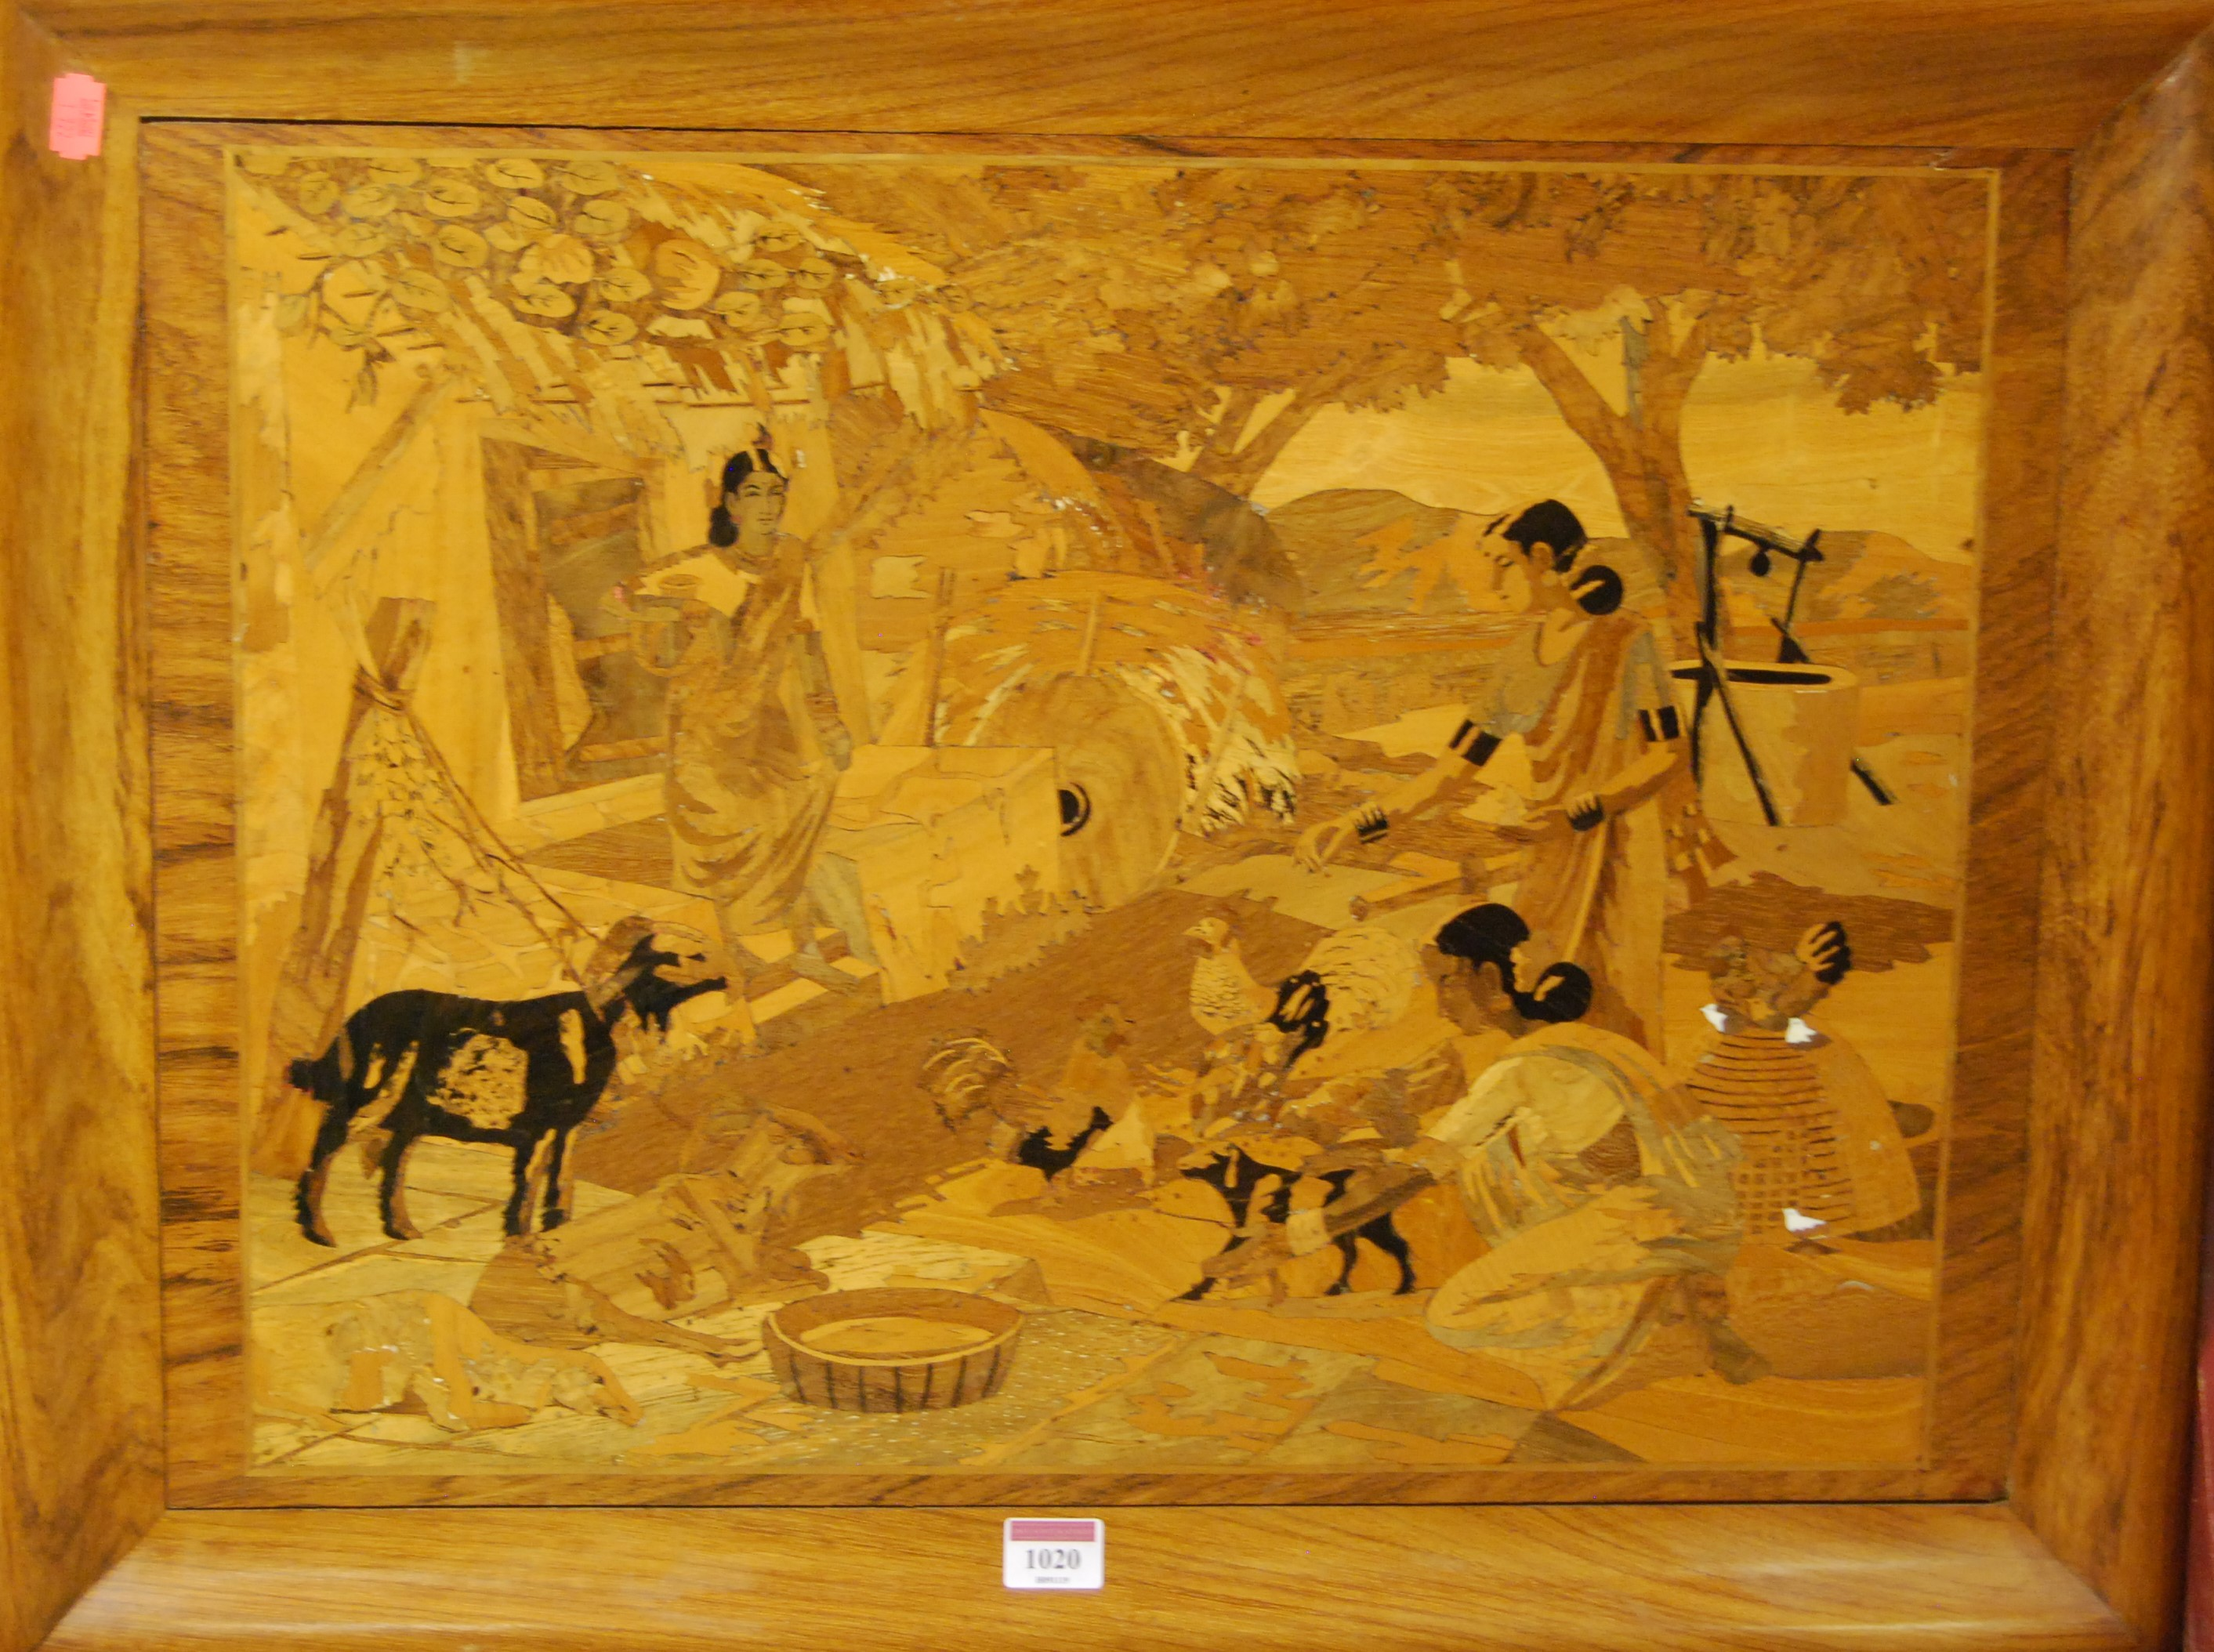 Lot 1020 - A walnut and marquetry panel depicting figures and livestock, late 20th century, full dimensions